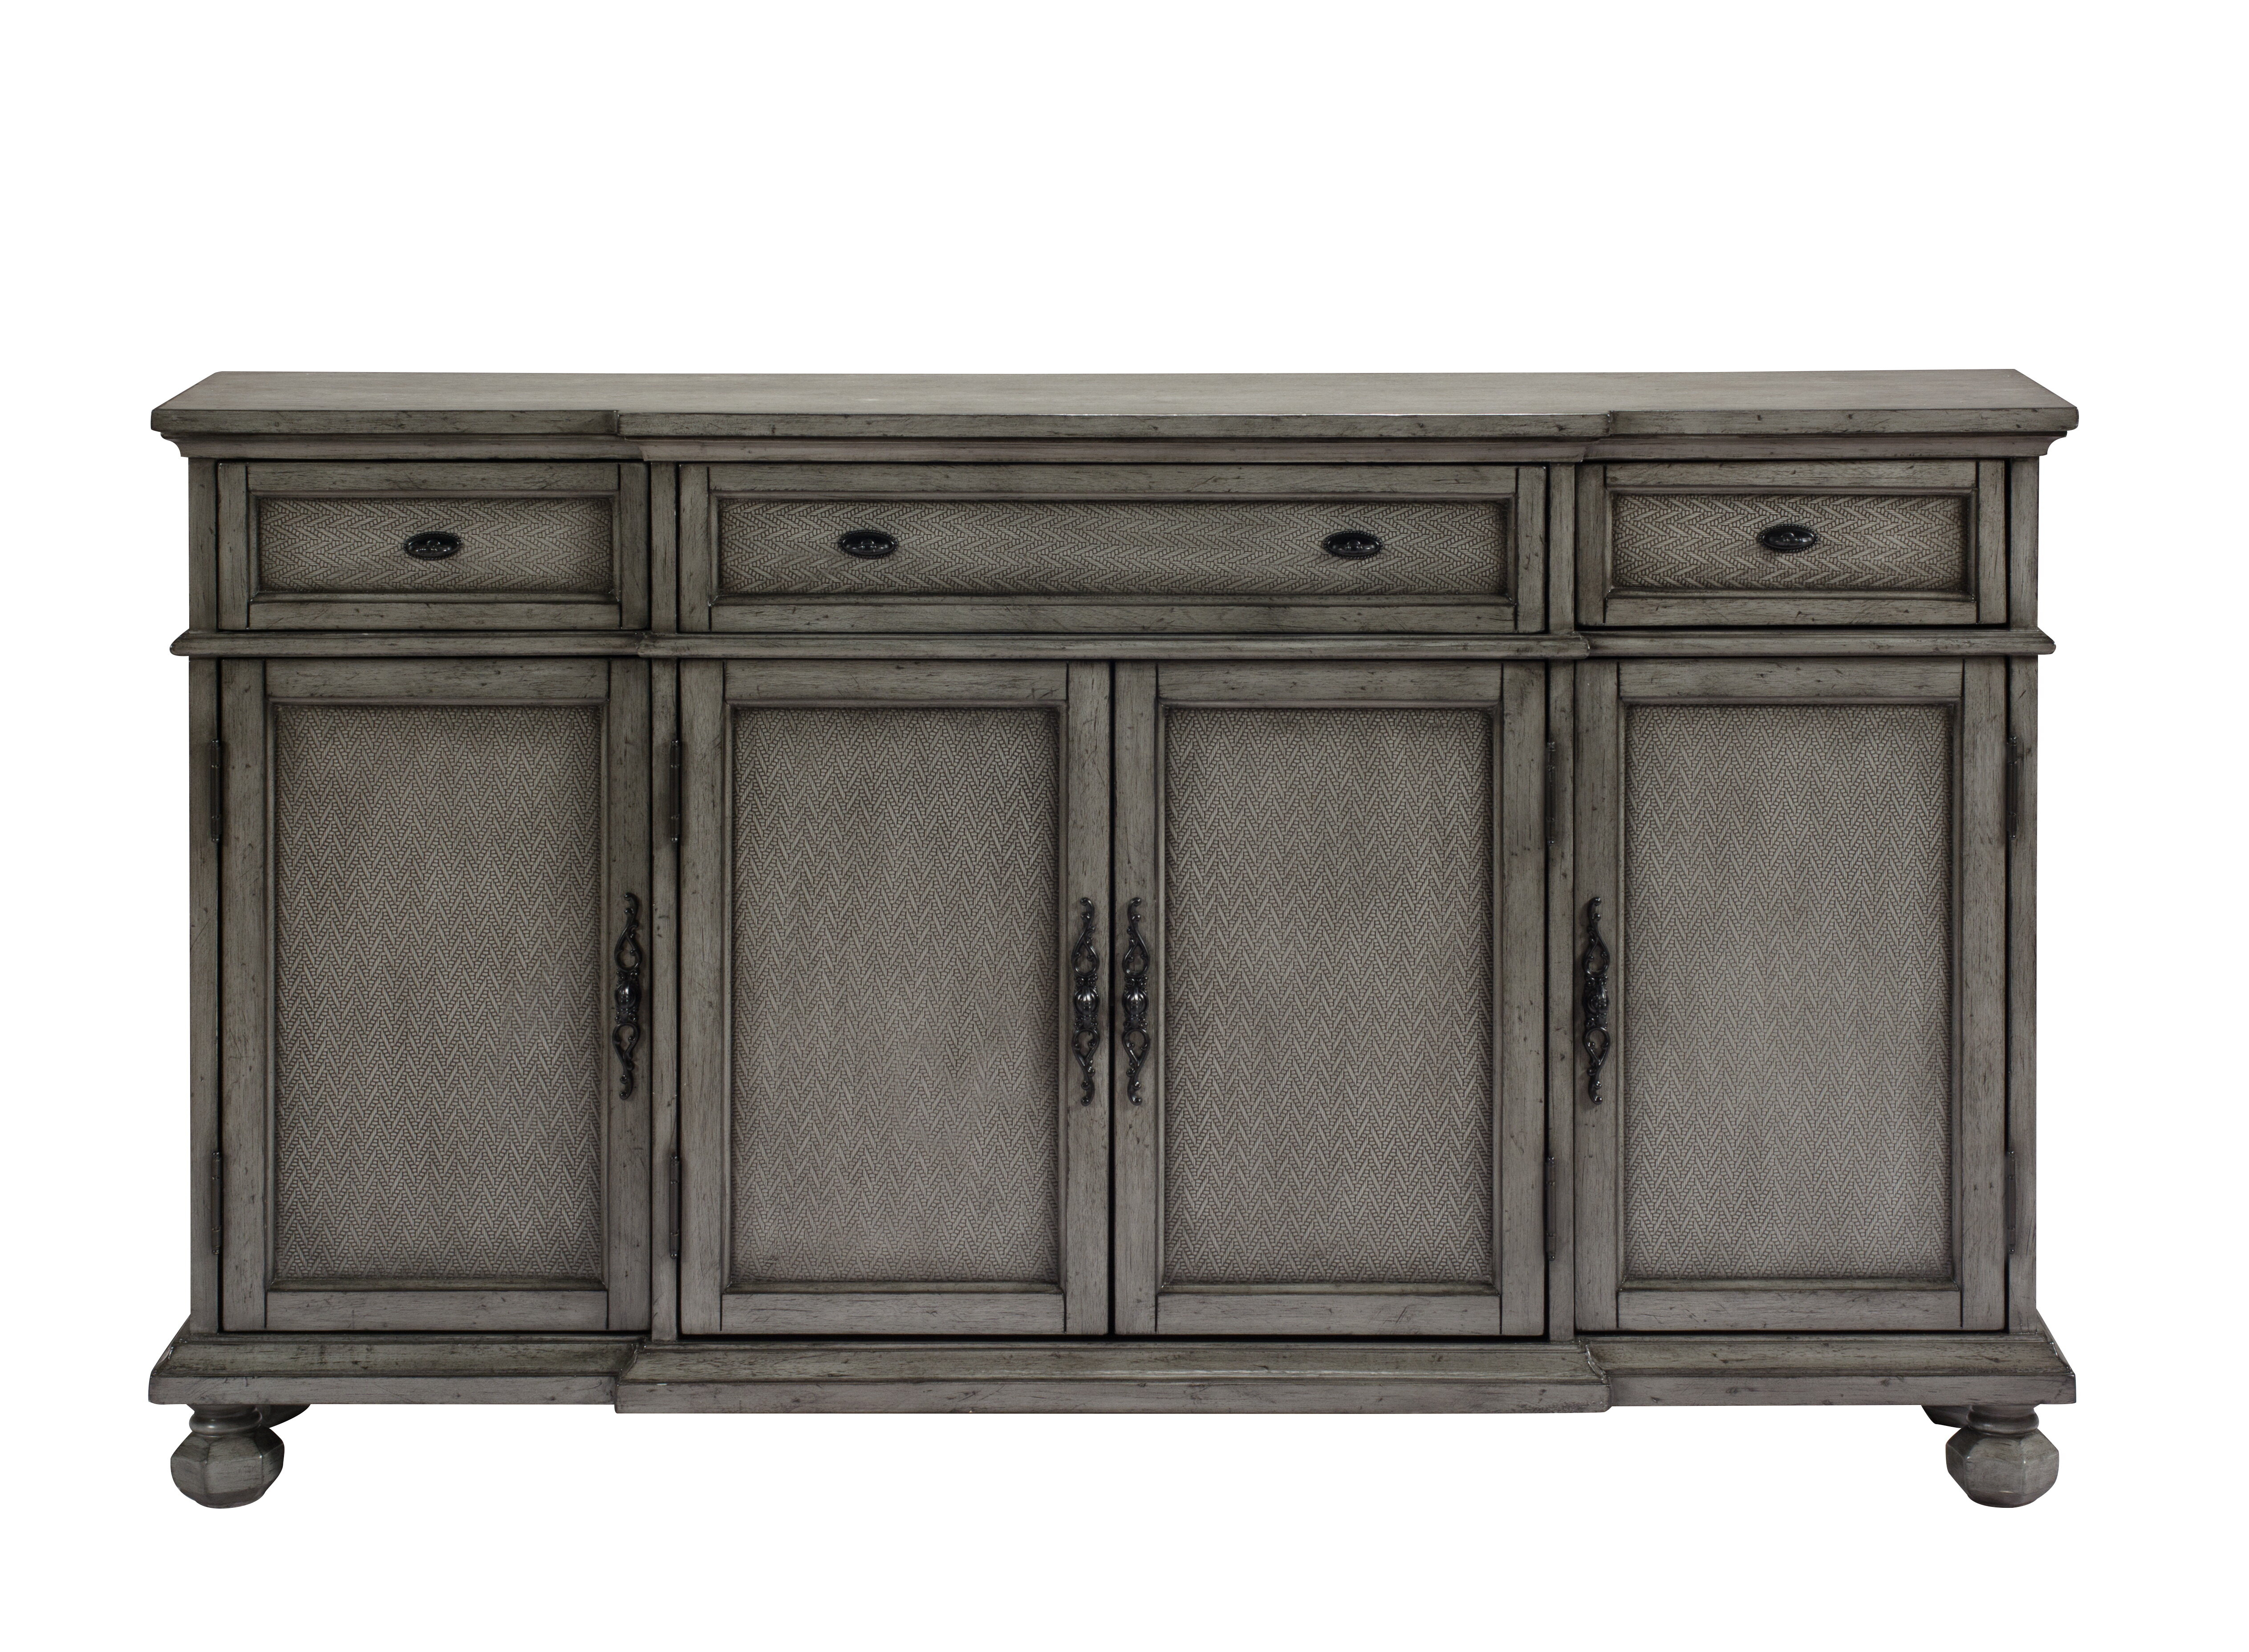 Giulia 3 Drawer Credenza Intended For Adelbert Credenzas (Image 11 of 30)